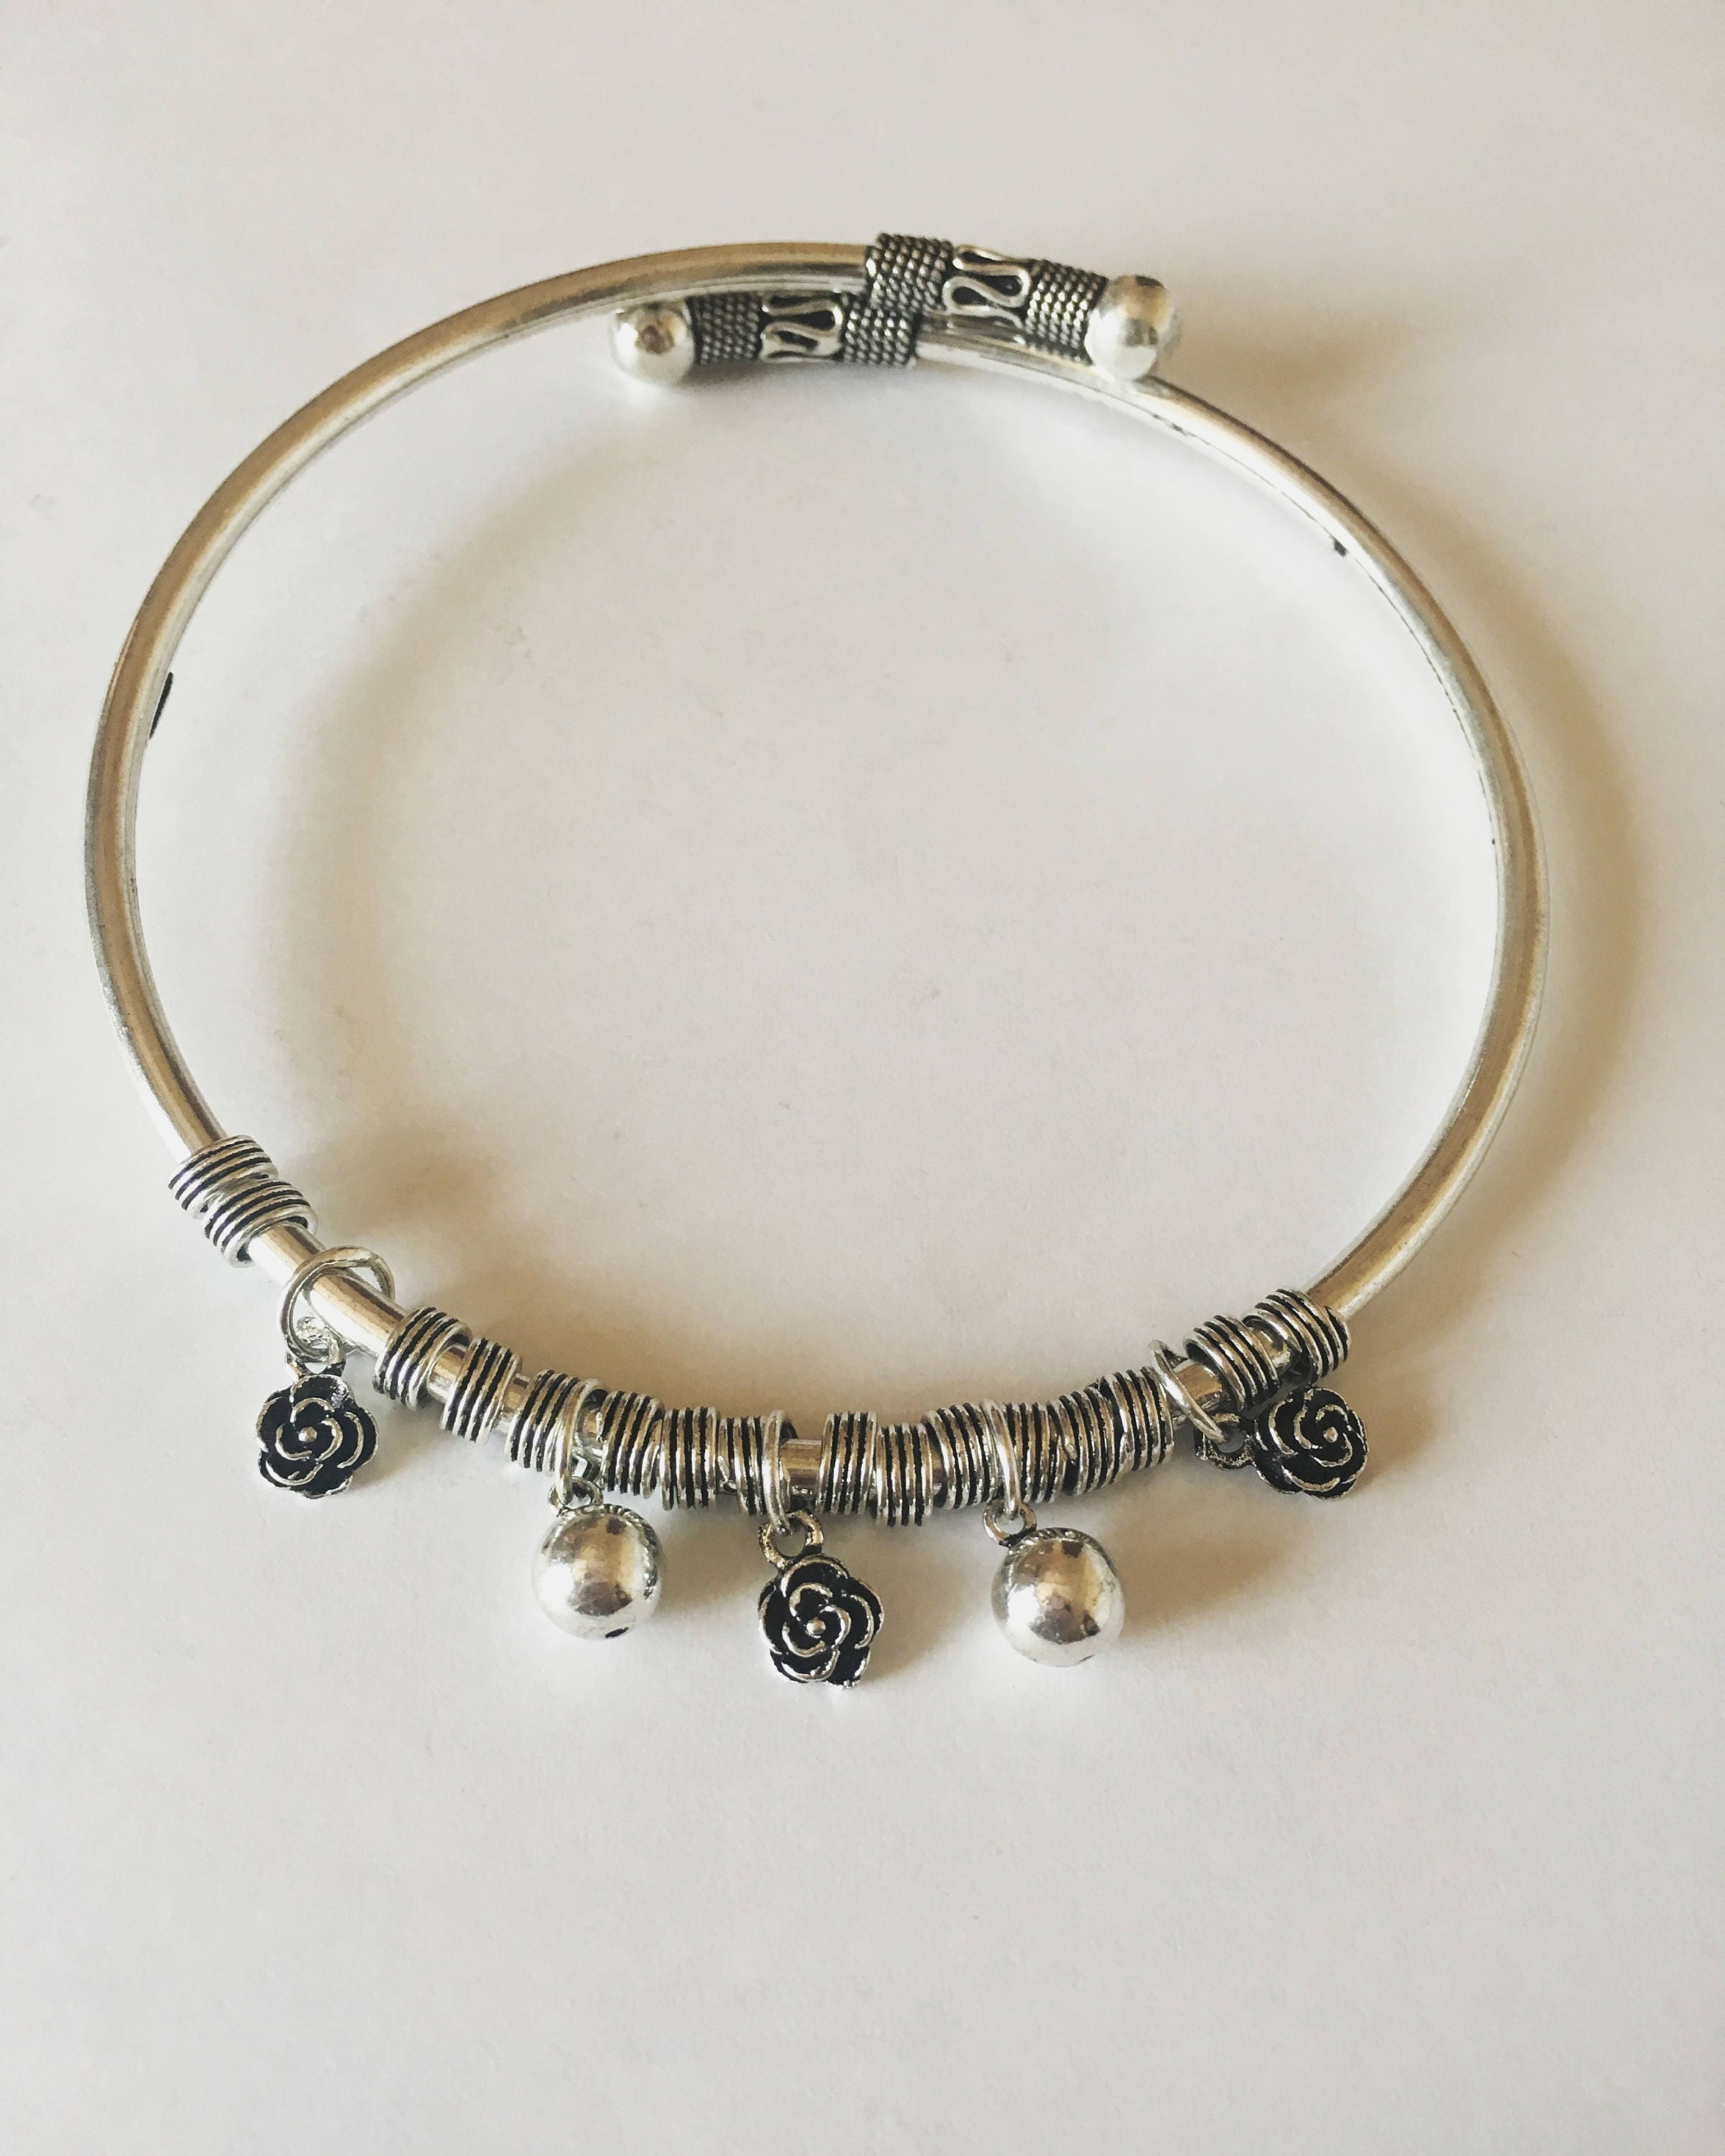 makes products from silver a aeravida elephants this k anklets artisan charm bracelet design set on little sterling ankle stylish and amazing chain jai for pa row adorable of details anklet plain tiny cute inch thai comes